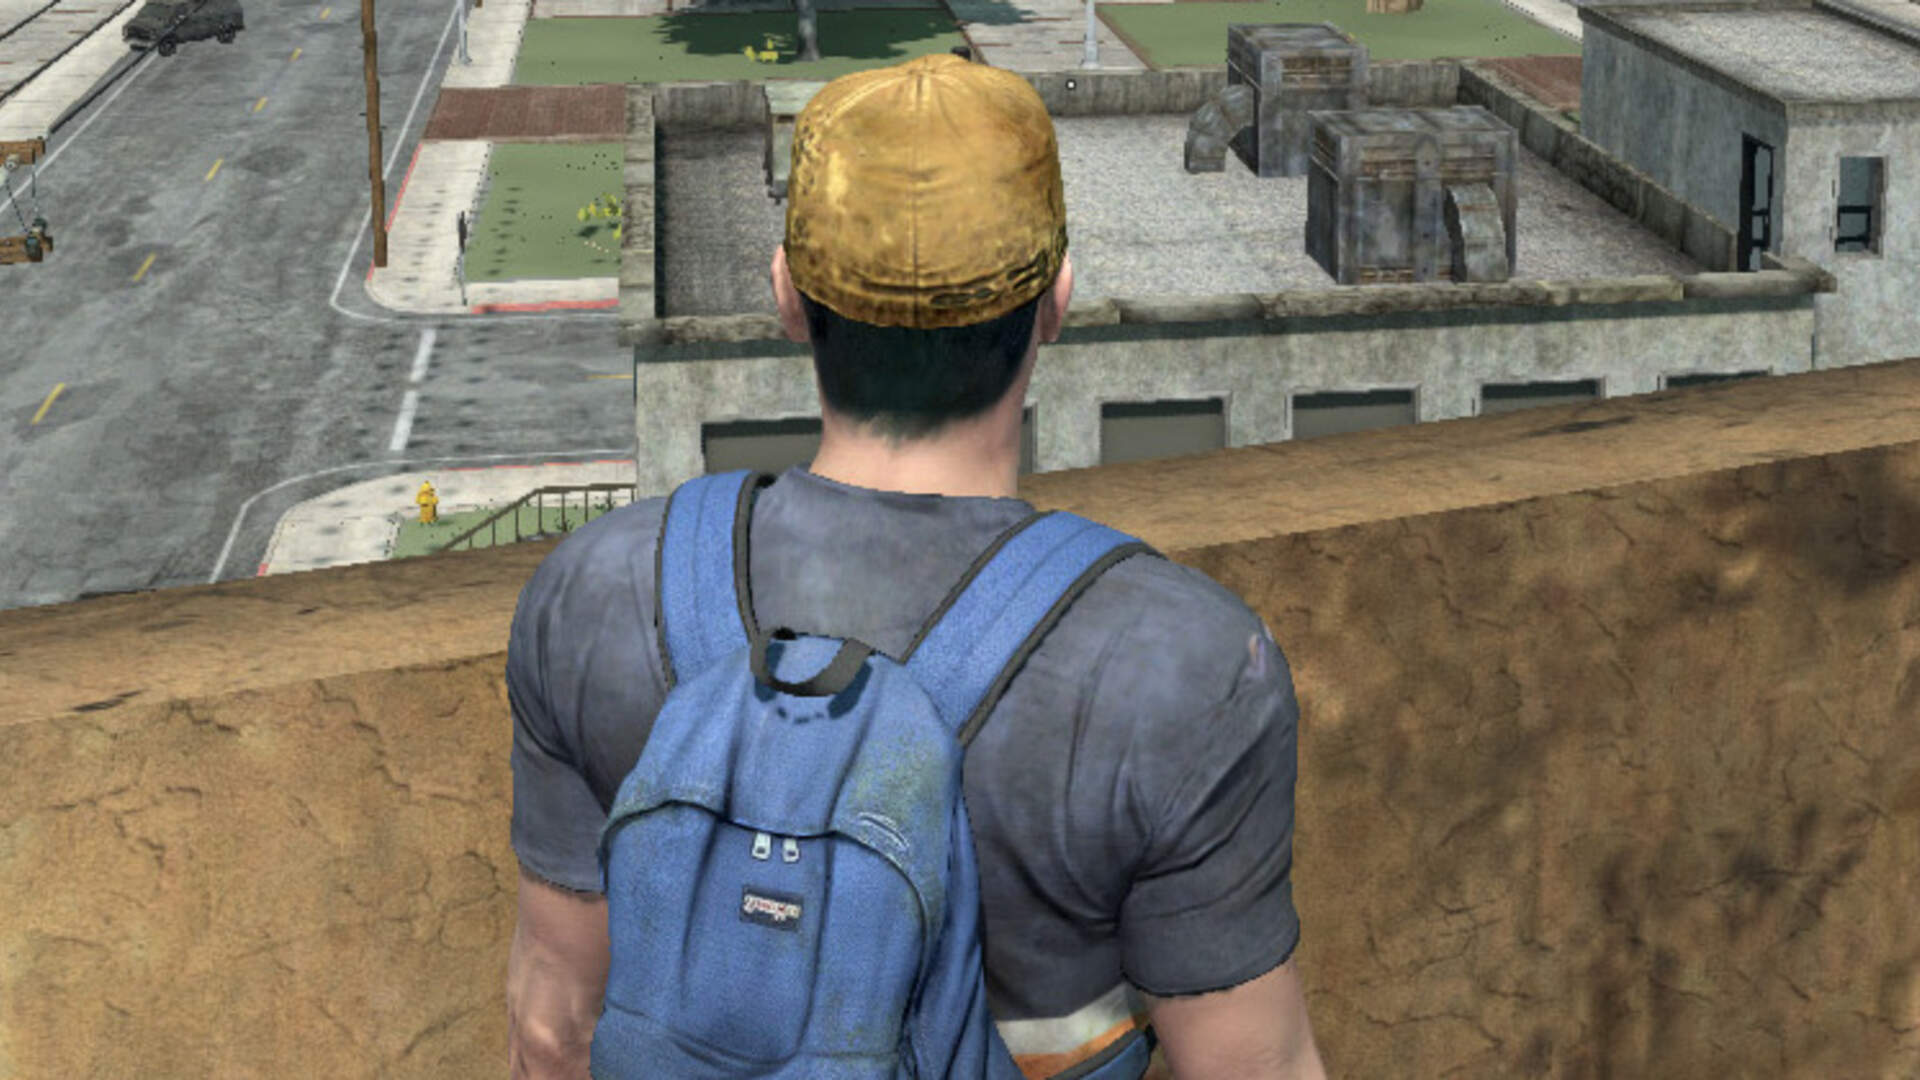 H1Z1 Crafting Guide and Tips - Build a Base